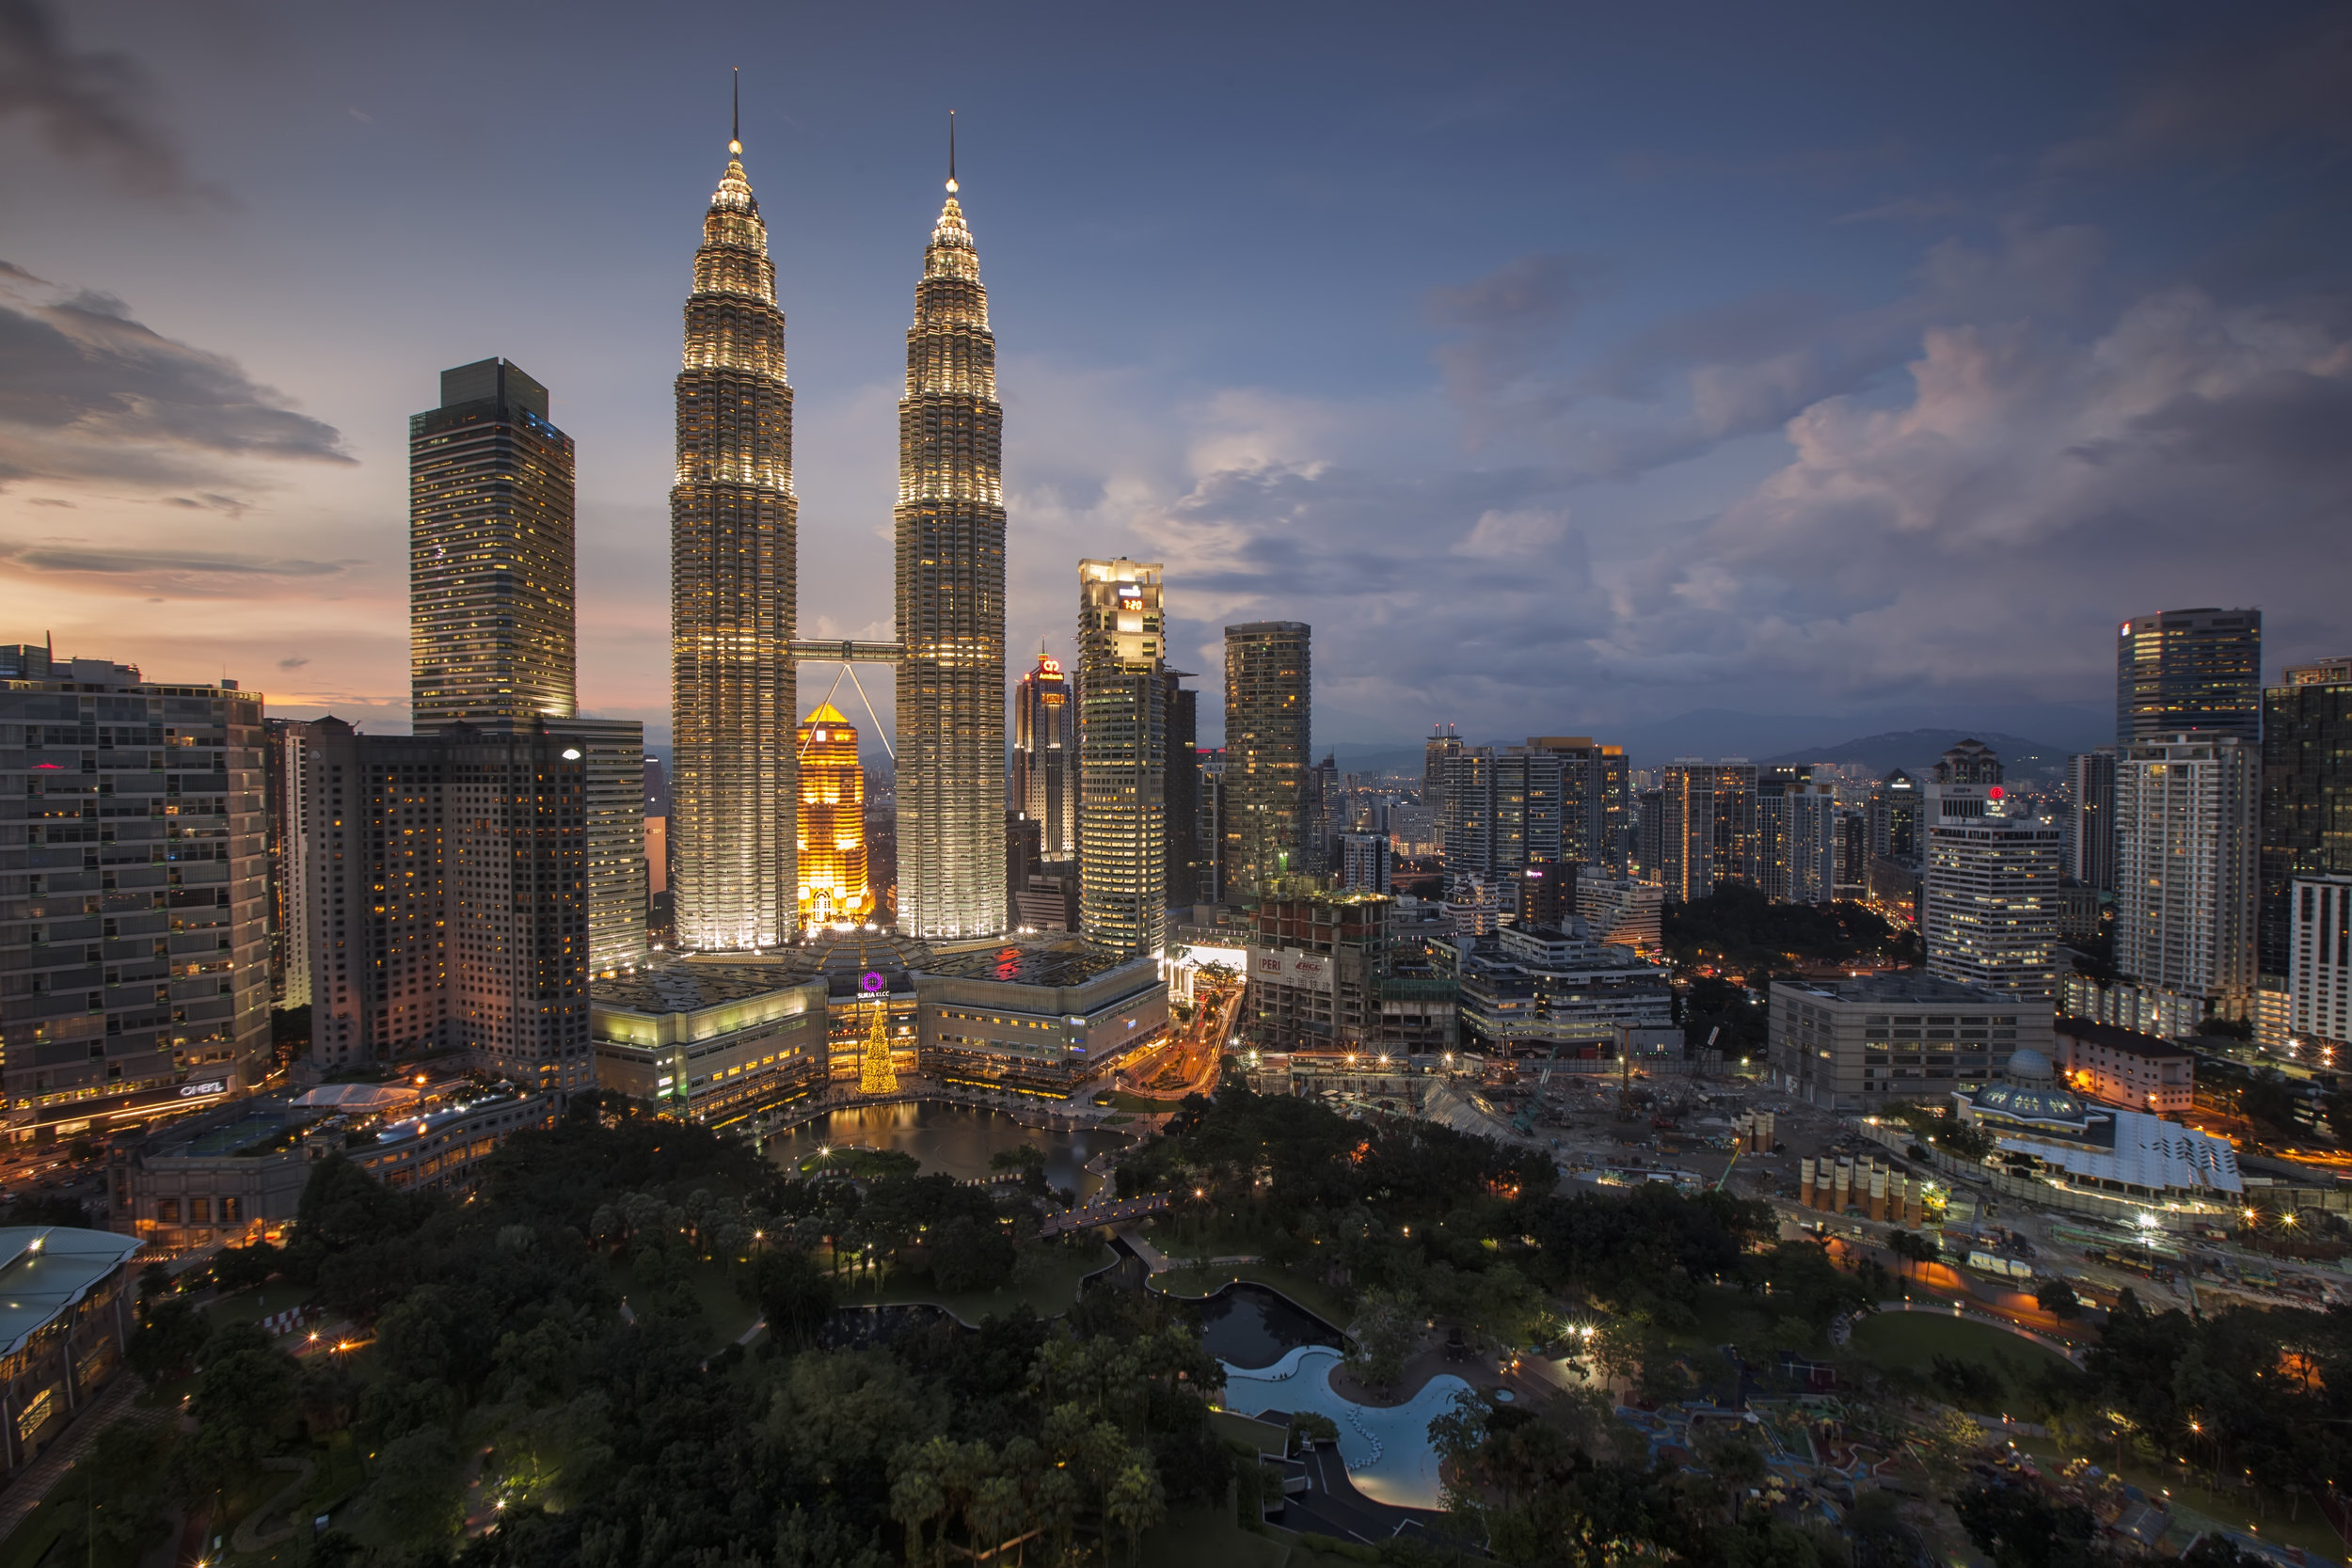 The City of Kuala Lumpur, popularly named KL, has the last decade become one of the most vital cities in Asia. KL is Malaysia's sultry capital packed with historic monuments, steel-clad skyscrapers, lush parks, mega-sized shopping malls, bustling street markets and trendy nightspots. Also an essential part of the vibrant mix are incense-wreathed, colourfully adorned mosques and temples of the country's Malay, Chinese and Indian communities. A reverence for these ancient cultures is balanced with a drive to be plugged into the contemporary world, as evidenced by an exciting contemporary art and design scene and a buzzing digital economy.